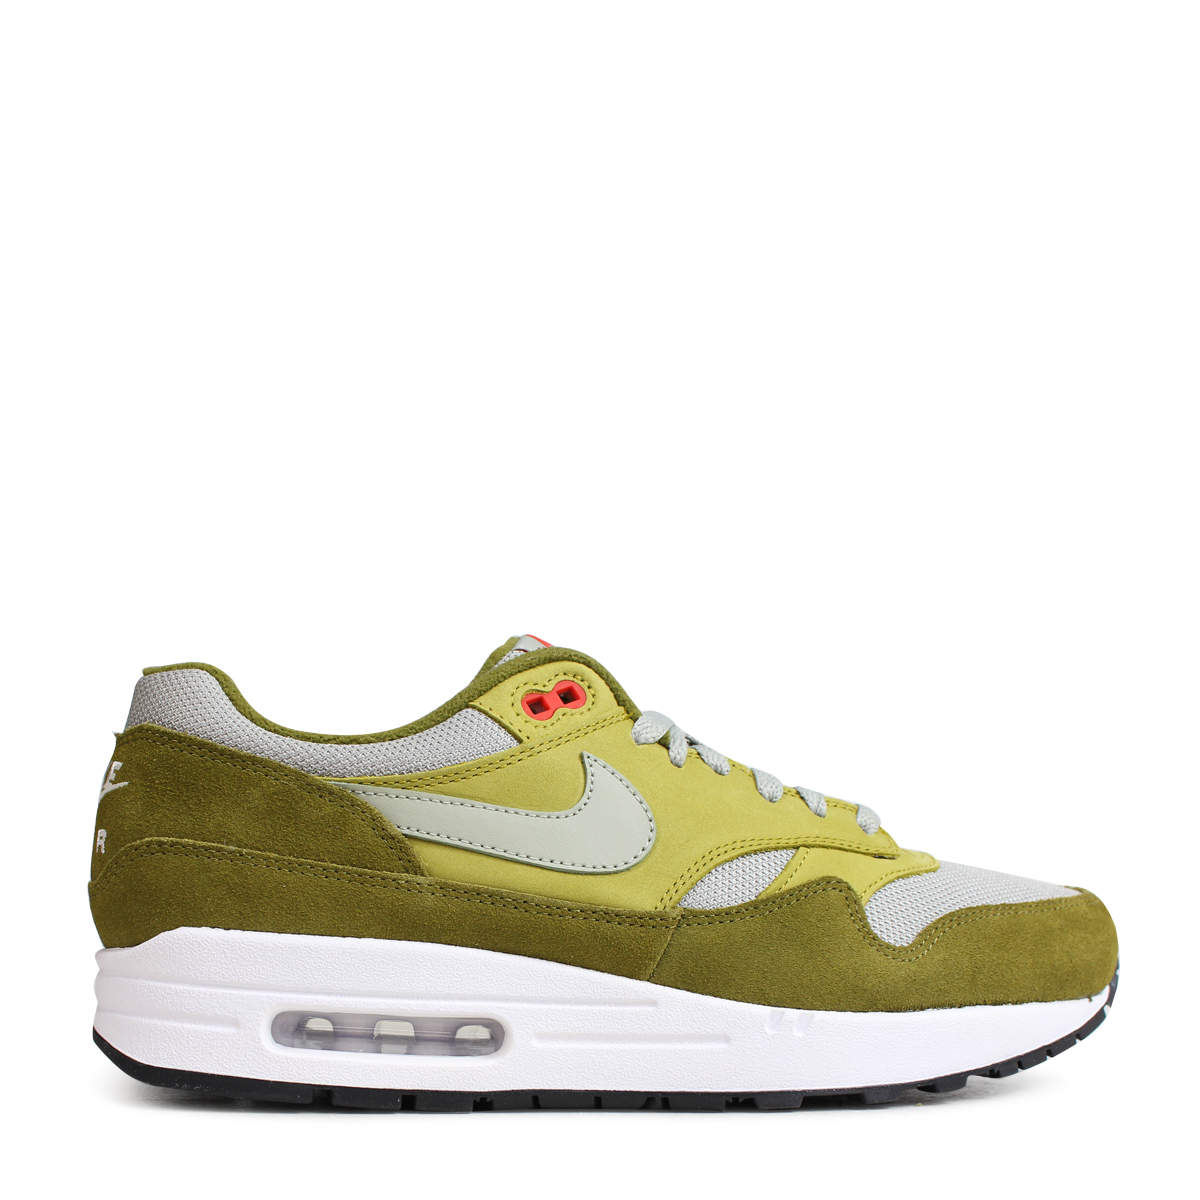 SALE NIKE AIR MAX 1 GREEN SUEDE CURRY PACK OLIVE FALK 908366